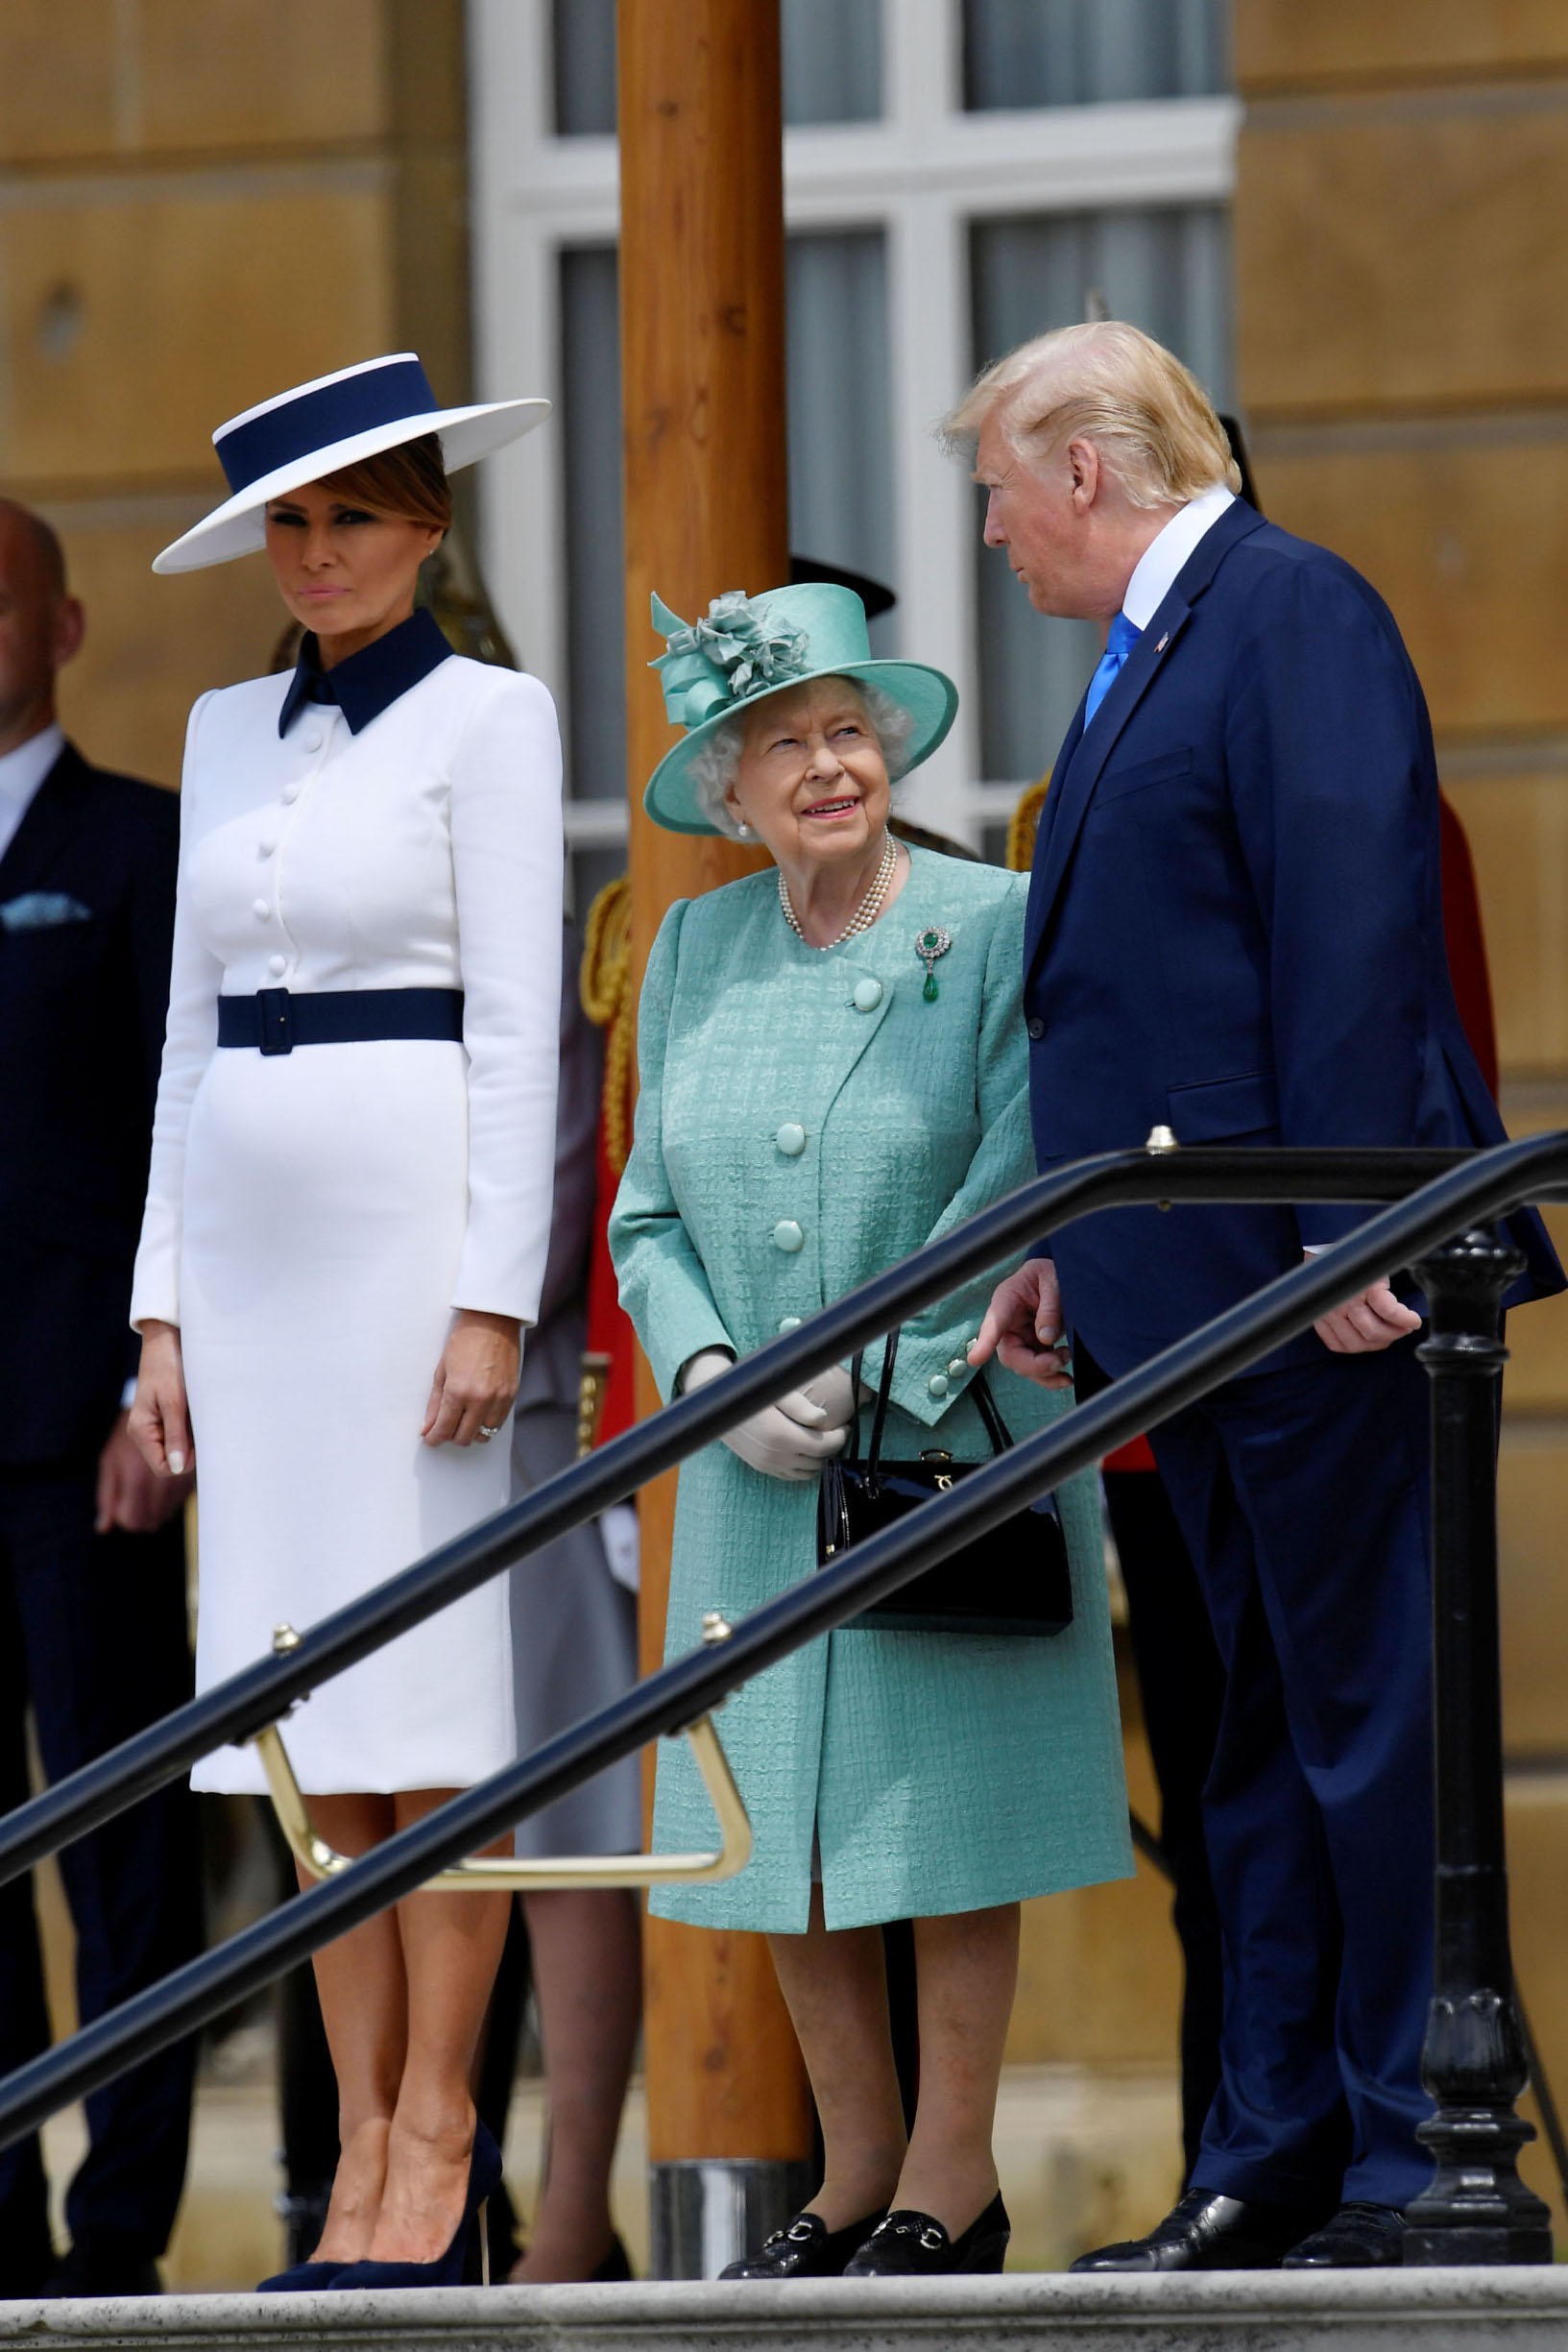 LONDON, ENGLAND - JUNE 03:  Queen Elizabeth II stands with US President Donald Trump and US First Lady Melania Trump during a welcome ceremony at Buckingham Palace on June 3, 2019 in London, England. President Trump's three-day state visit will include lunch with the Queen, and a State Banquet at Buckingham Palace, as well as business meetings with the Prime Minister and the Duke of York, before travelling to Portsmouth to mark the 75th anniversary of the D-Day landings.  (Photo by Toby Melville - WPA Pool/Getty Images)